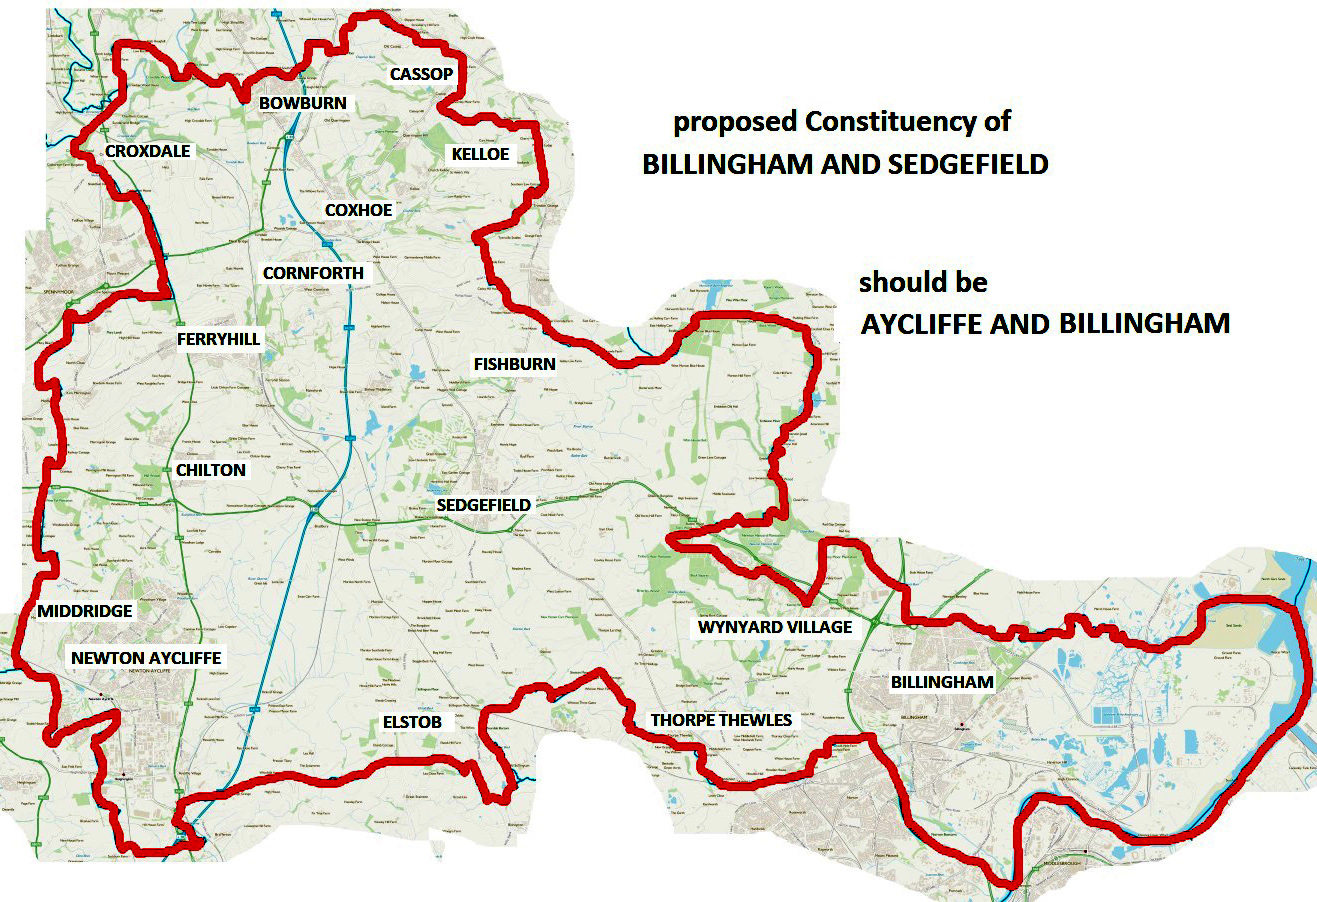 Bid to Change Name of New Constituency Boundary